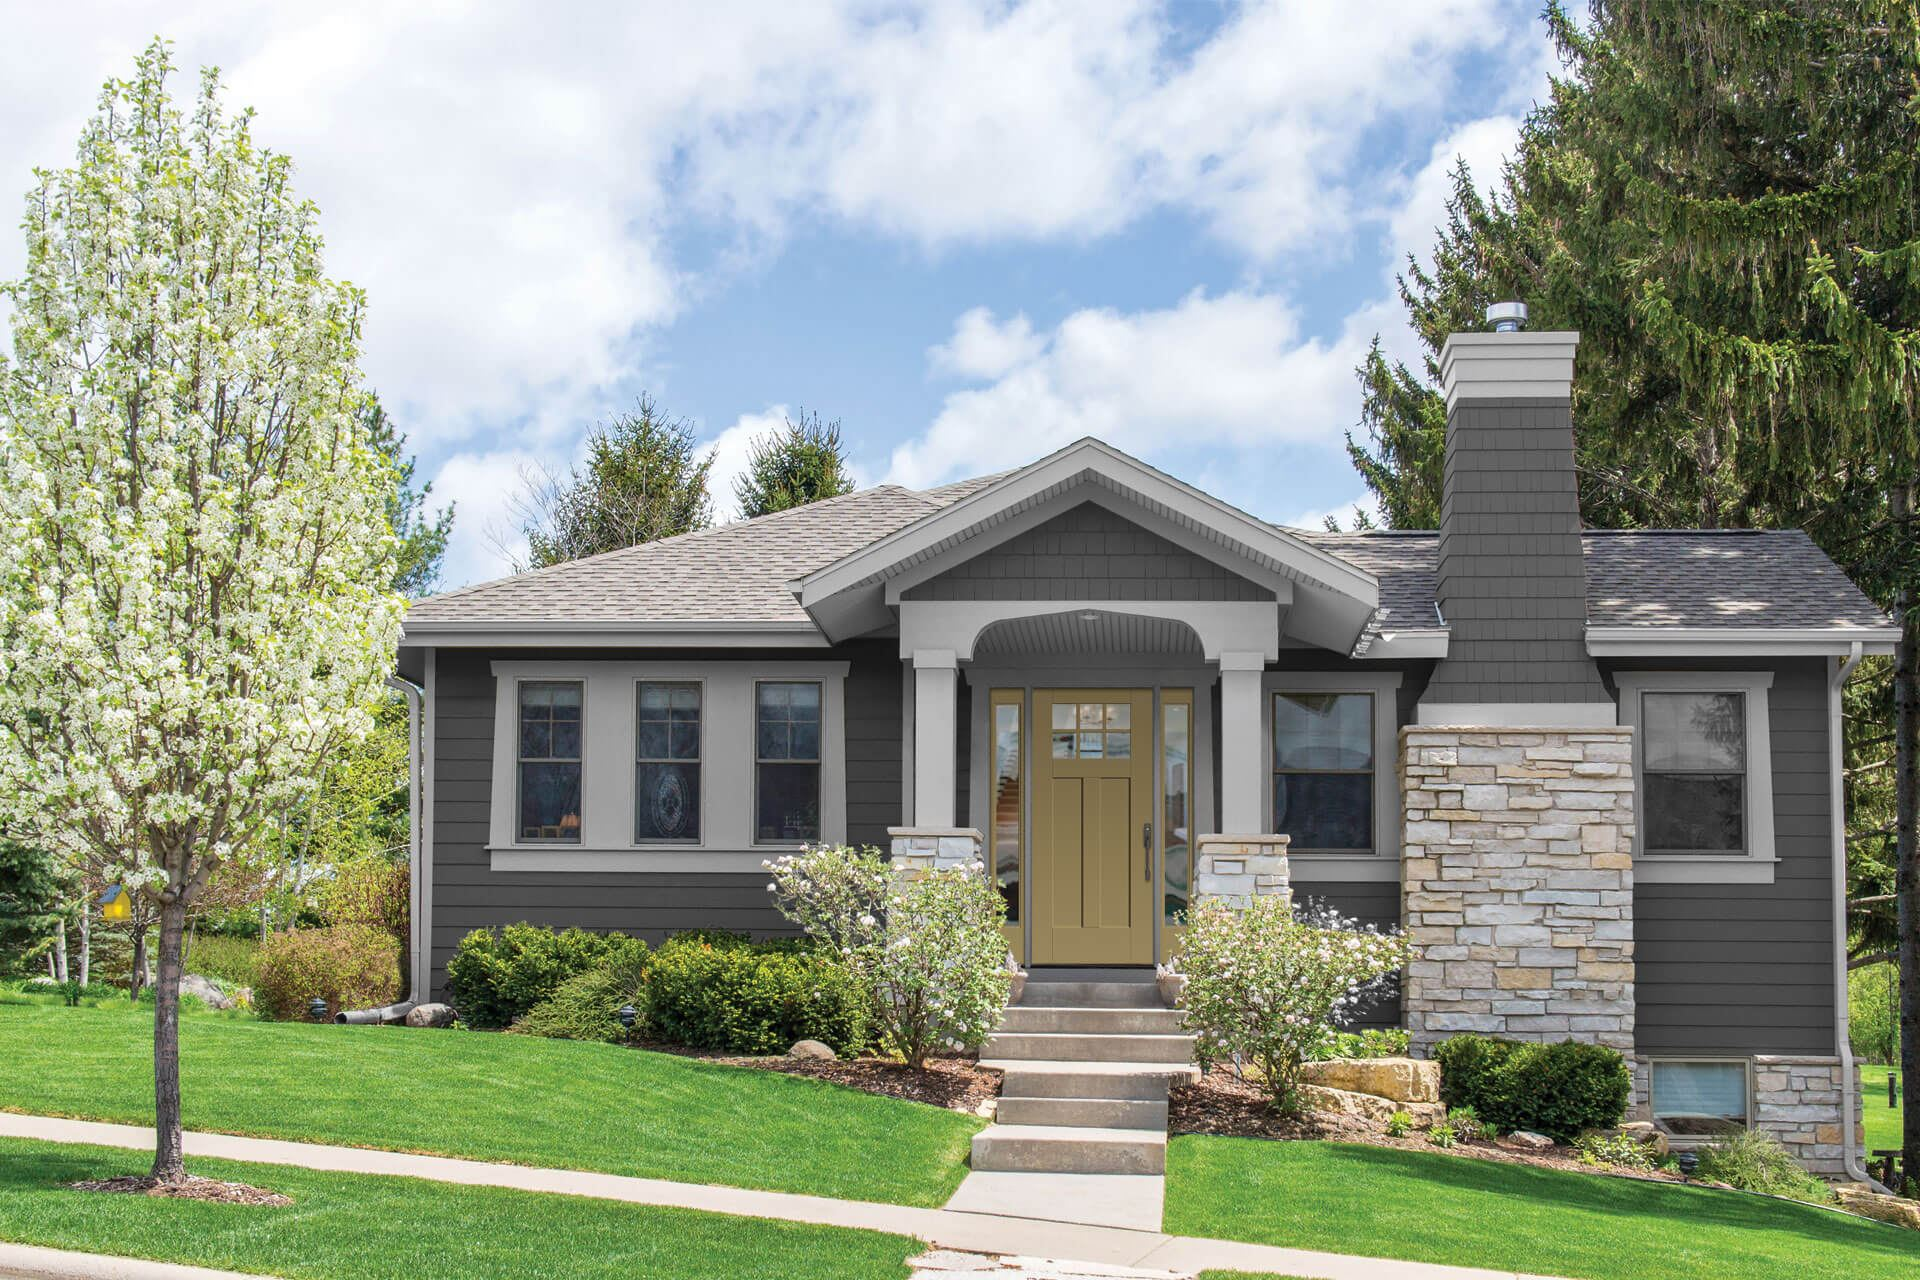 A gray house with bushes around the front door for landscaping